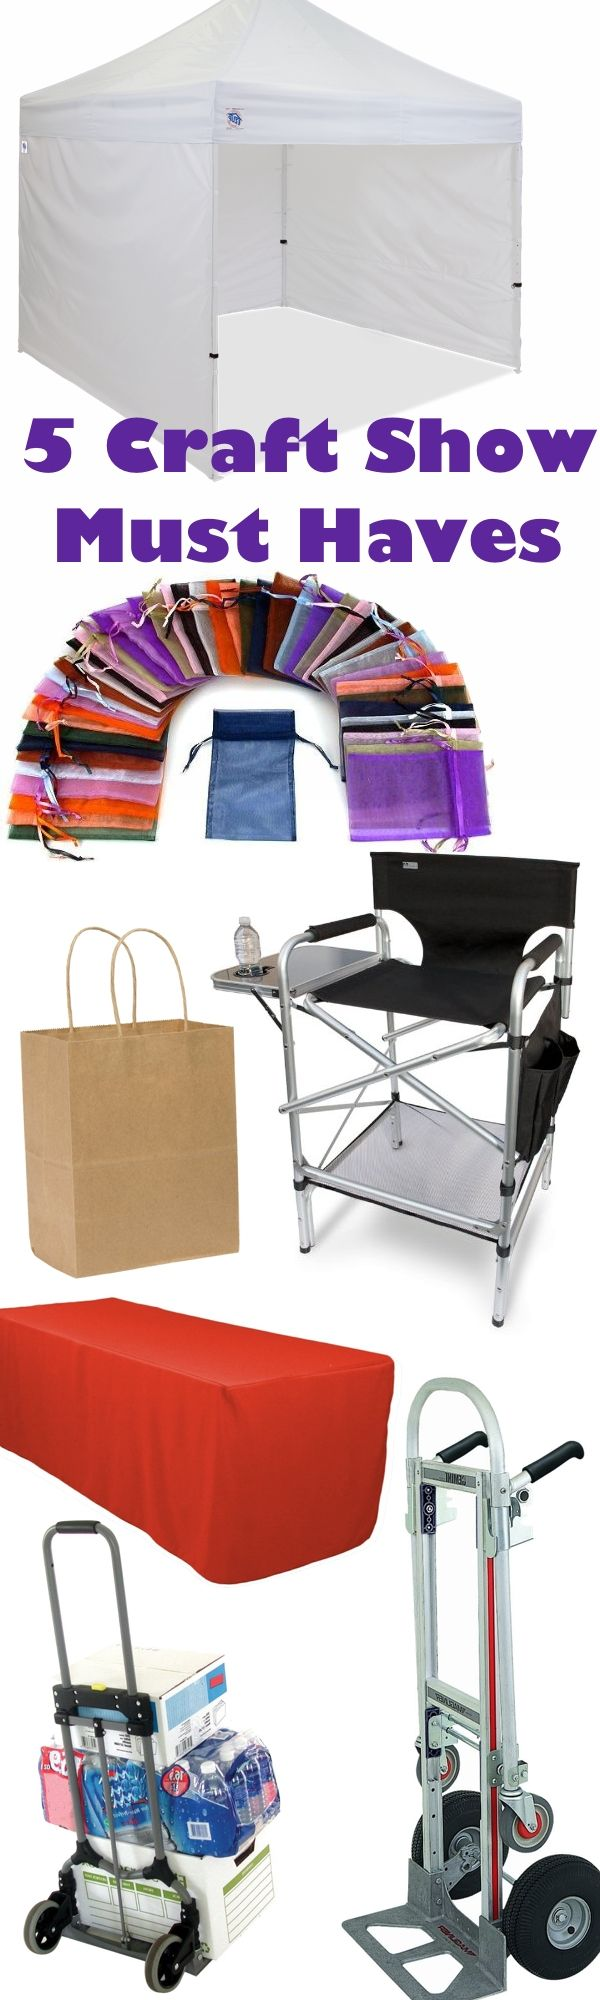 I've been doing my fair share of craft fairs for 10 years now, so I've learned a lot of tricks along the way. My craft show tool kit has evolved a lot over the years, and now there are a few handy items I can't live without. Here are my top 5 craft show must haves.